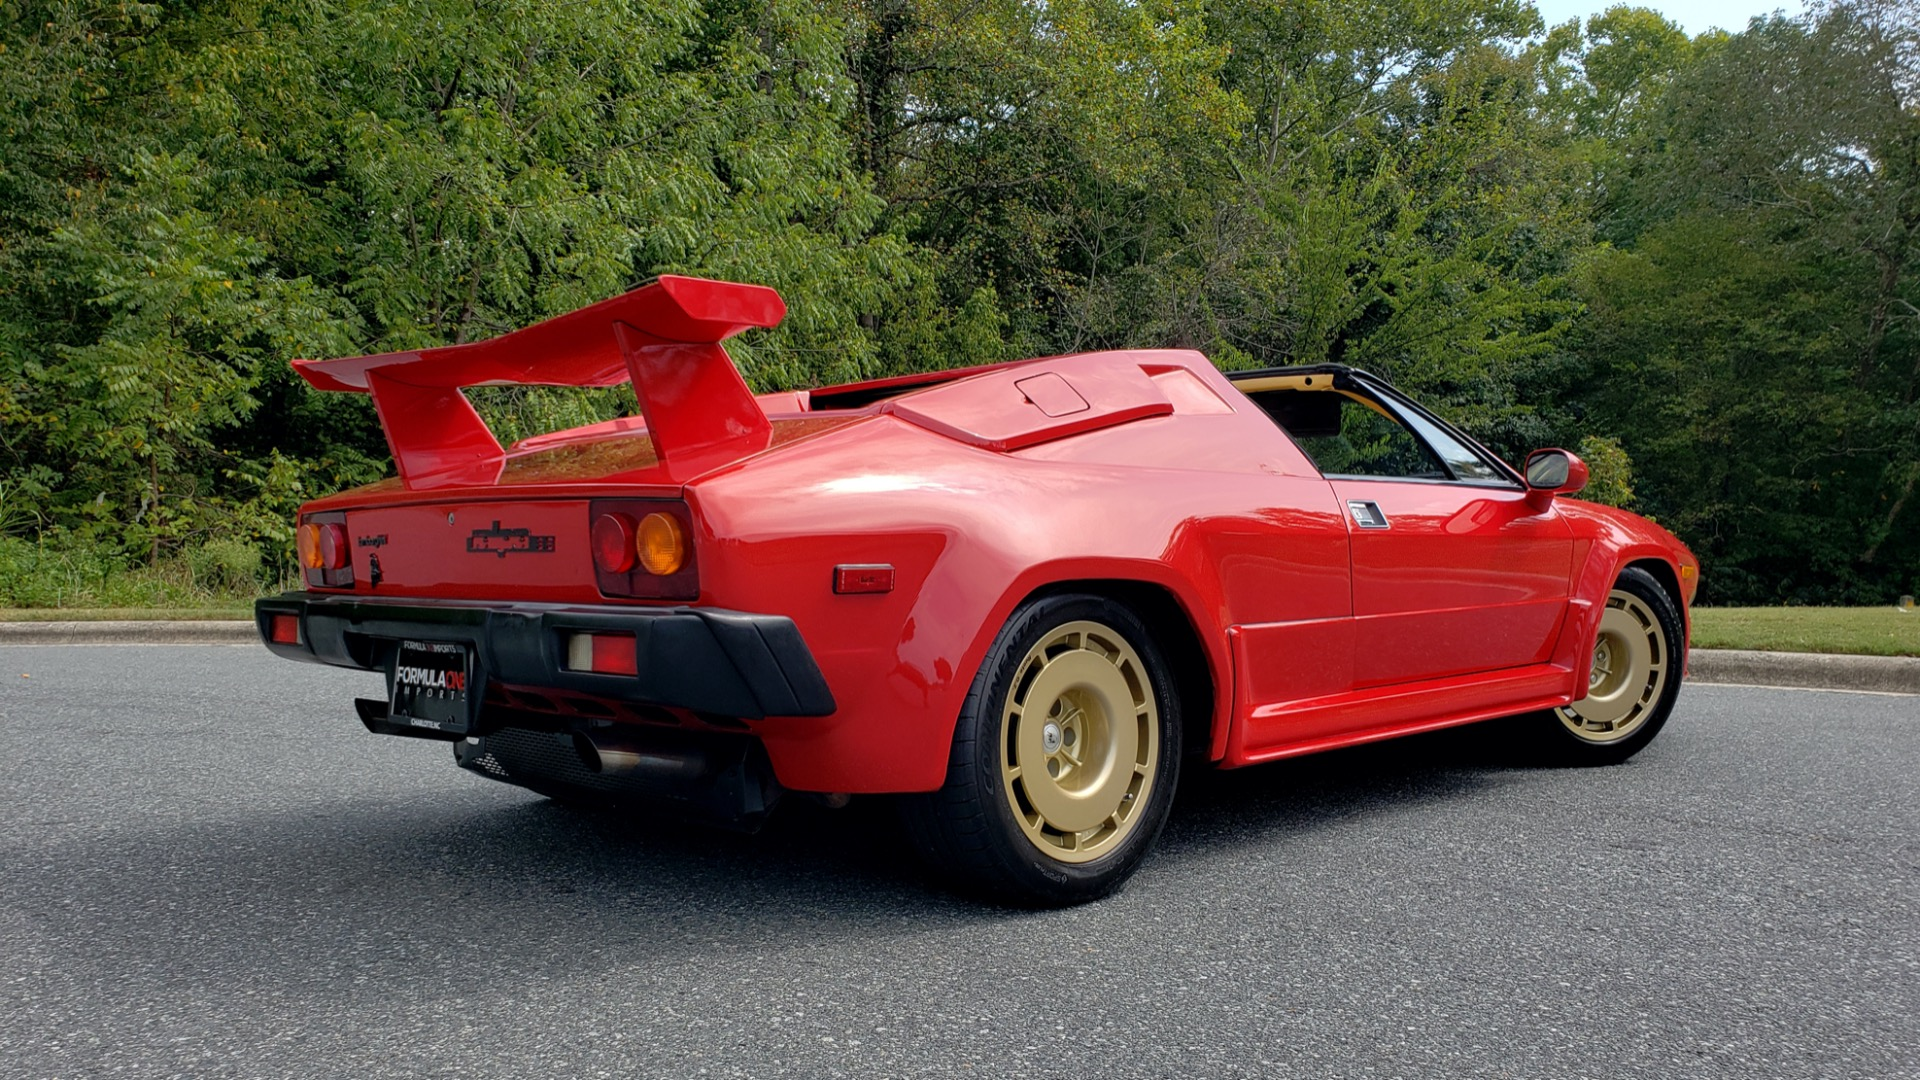 Used 1988 Lamborghini JALPA 3.5 / 5-SPD MANUAL / LOW MILES / EXCELLENT CONDITION for sale Sold at Formula Imports in Charlotte NC 28227 29